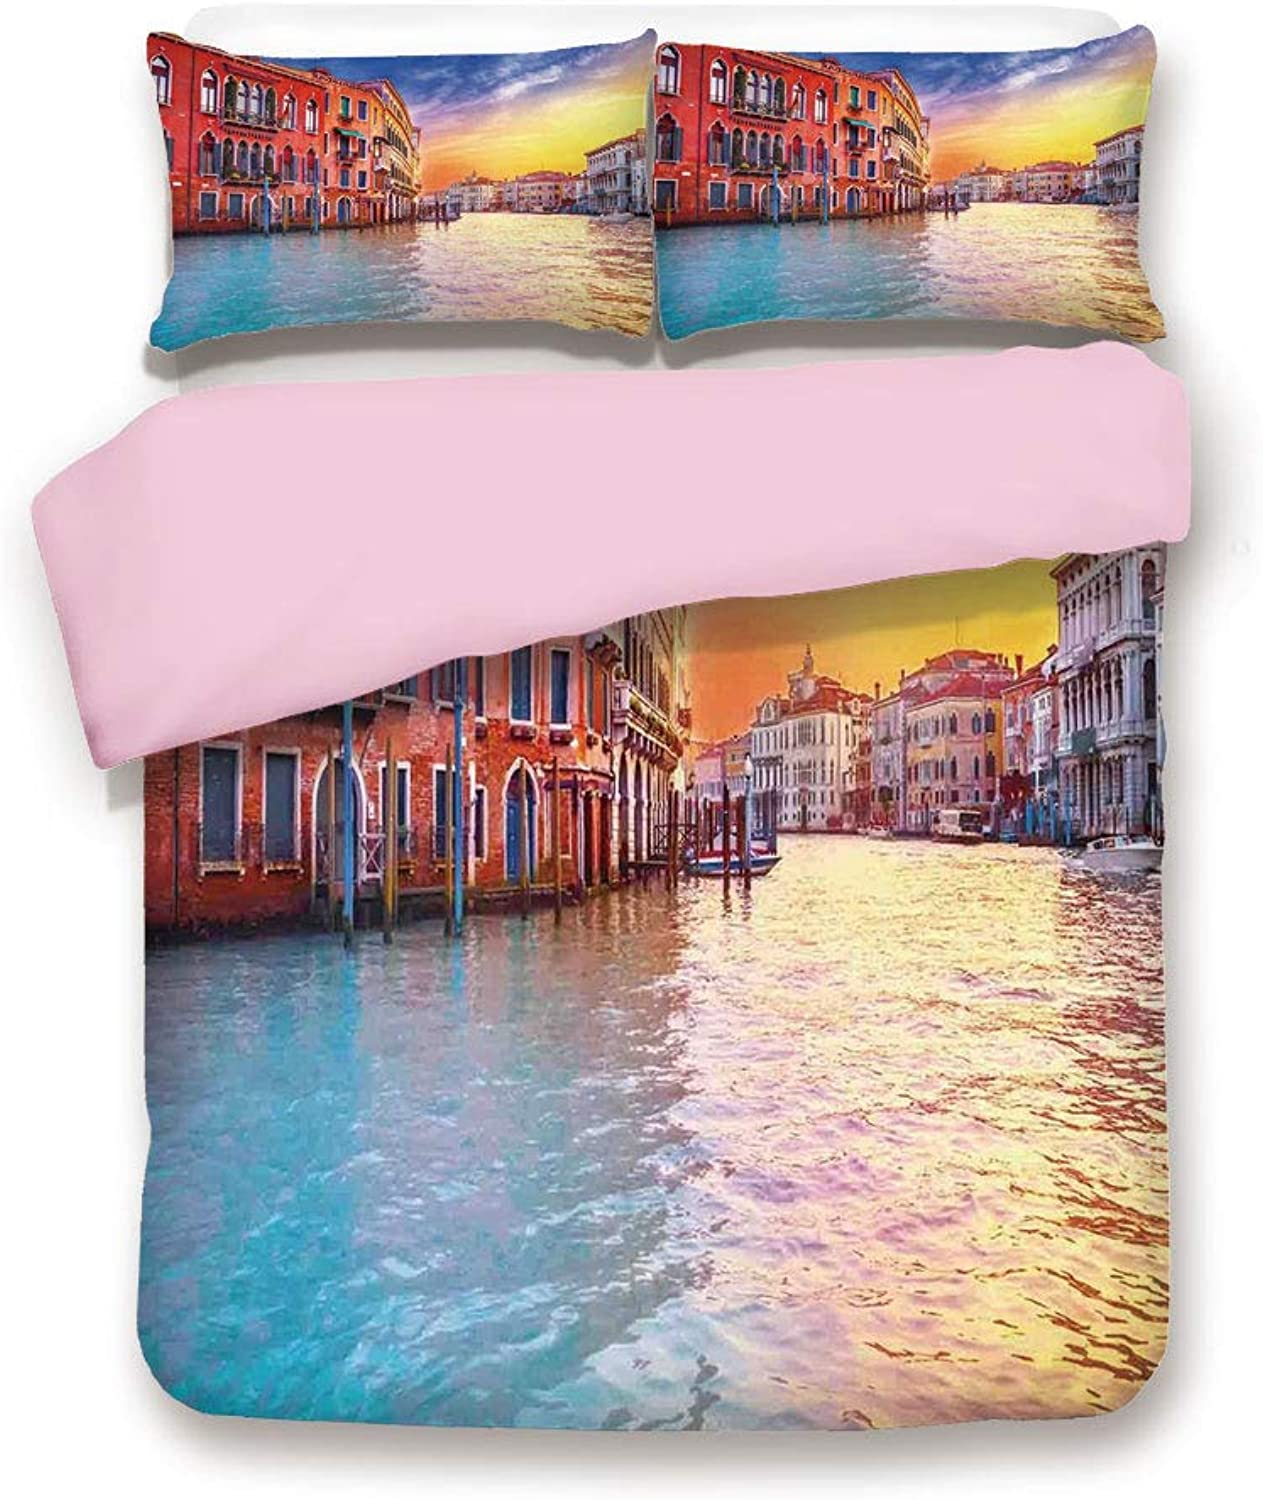 Pink Duvet Cover Set,Twin Size,European Magical Venice Canal with Historical Buildings Famous Town Scenery,Decorative 3 Piece Bedding Set with 2 Pillow Sham,Best Gift for Girls Women,bluee orange